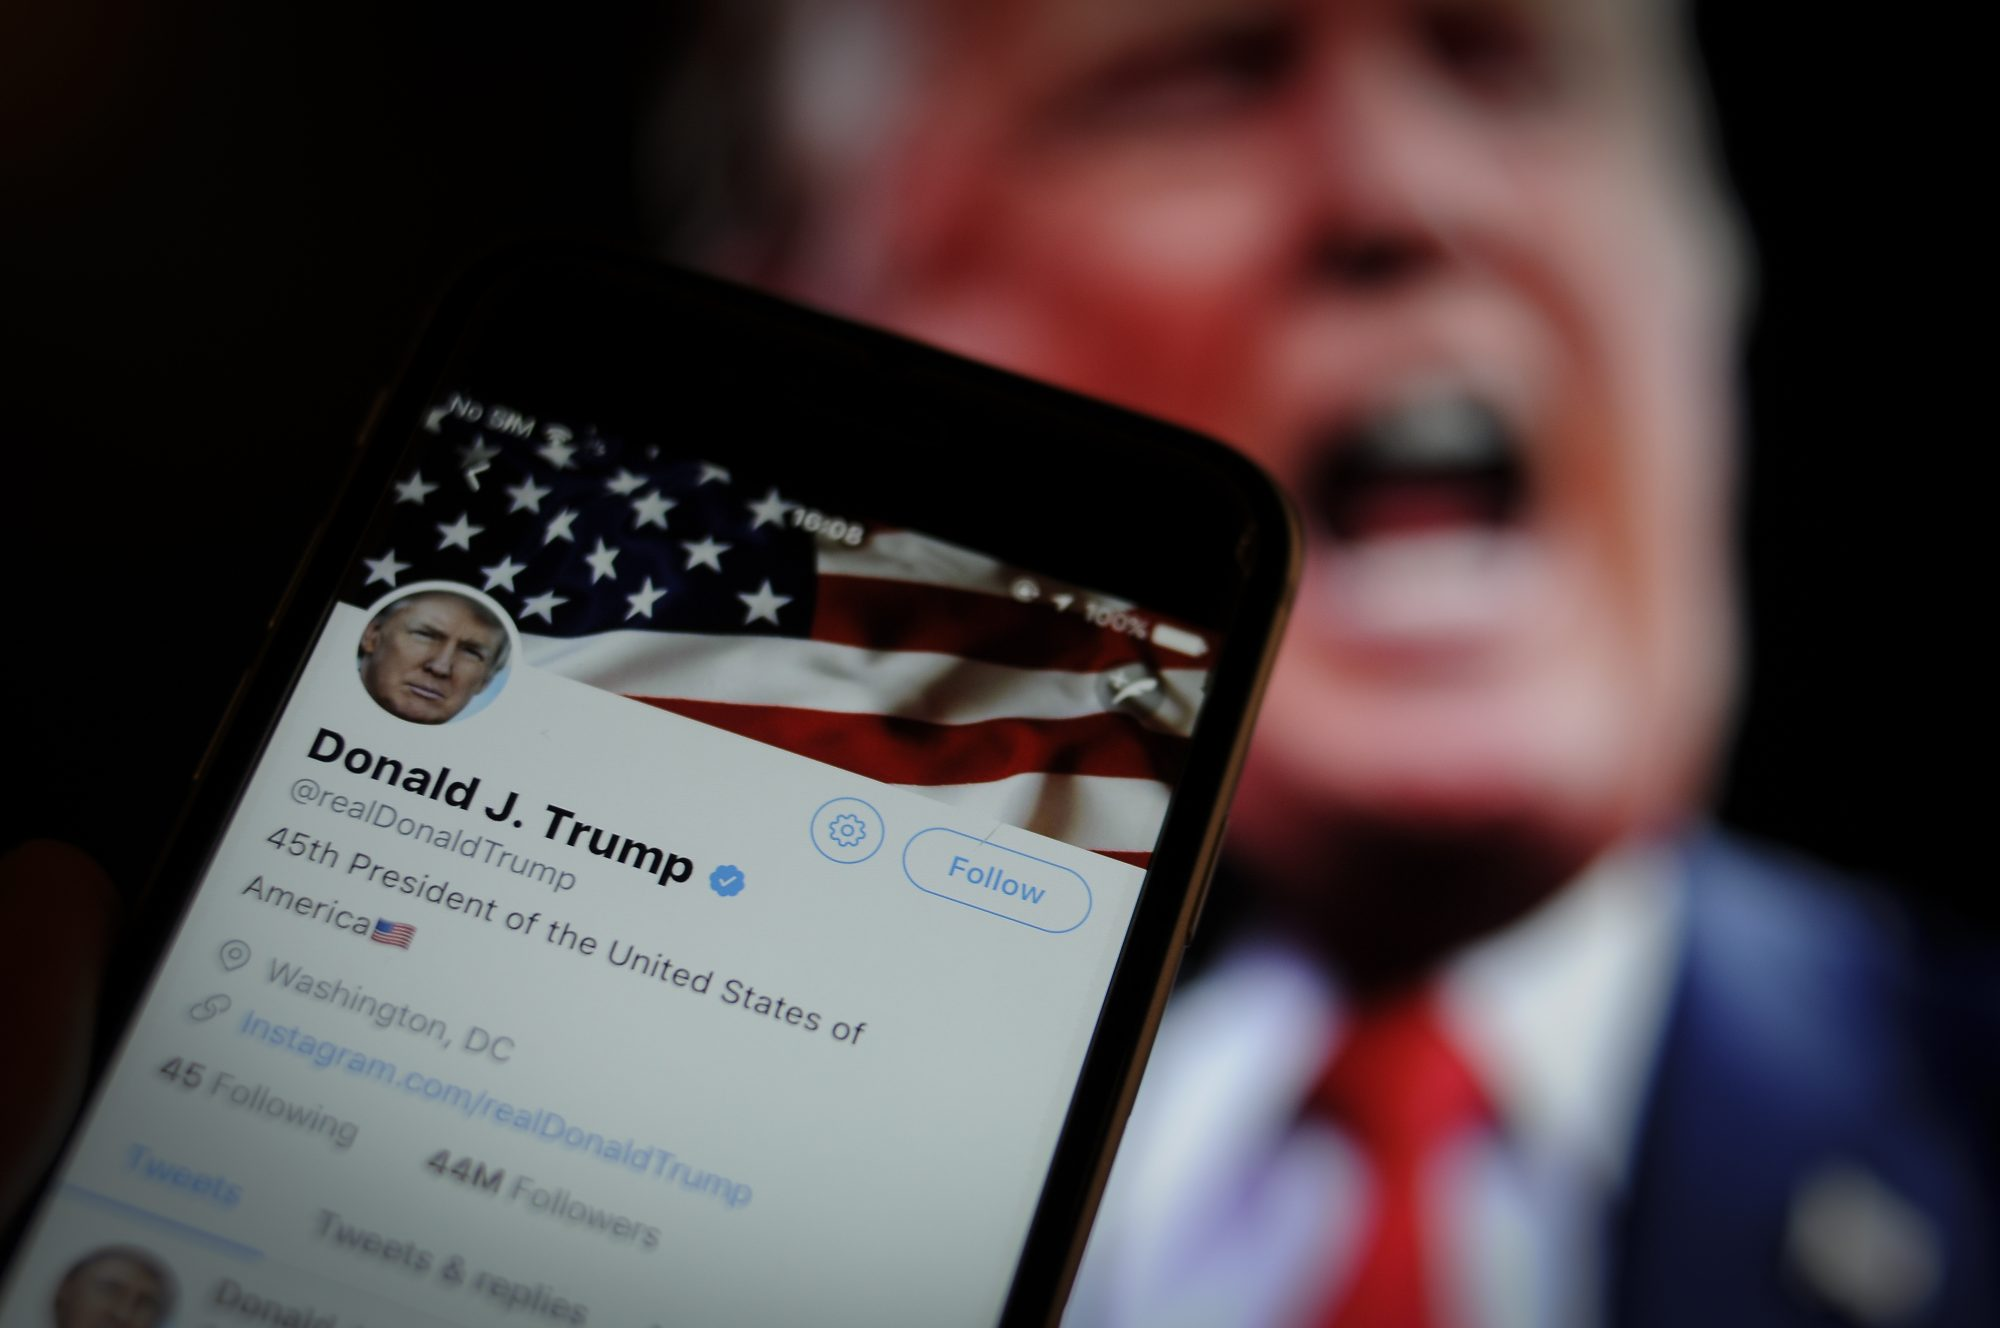 Photo of Twitter App with Donald Trump in the Background